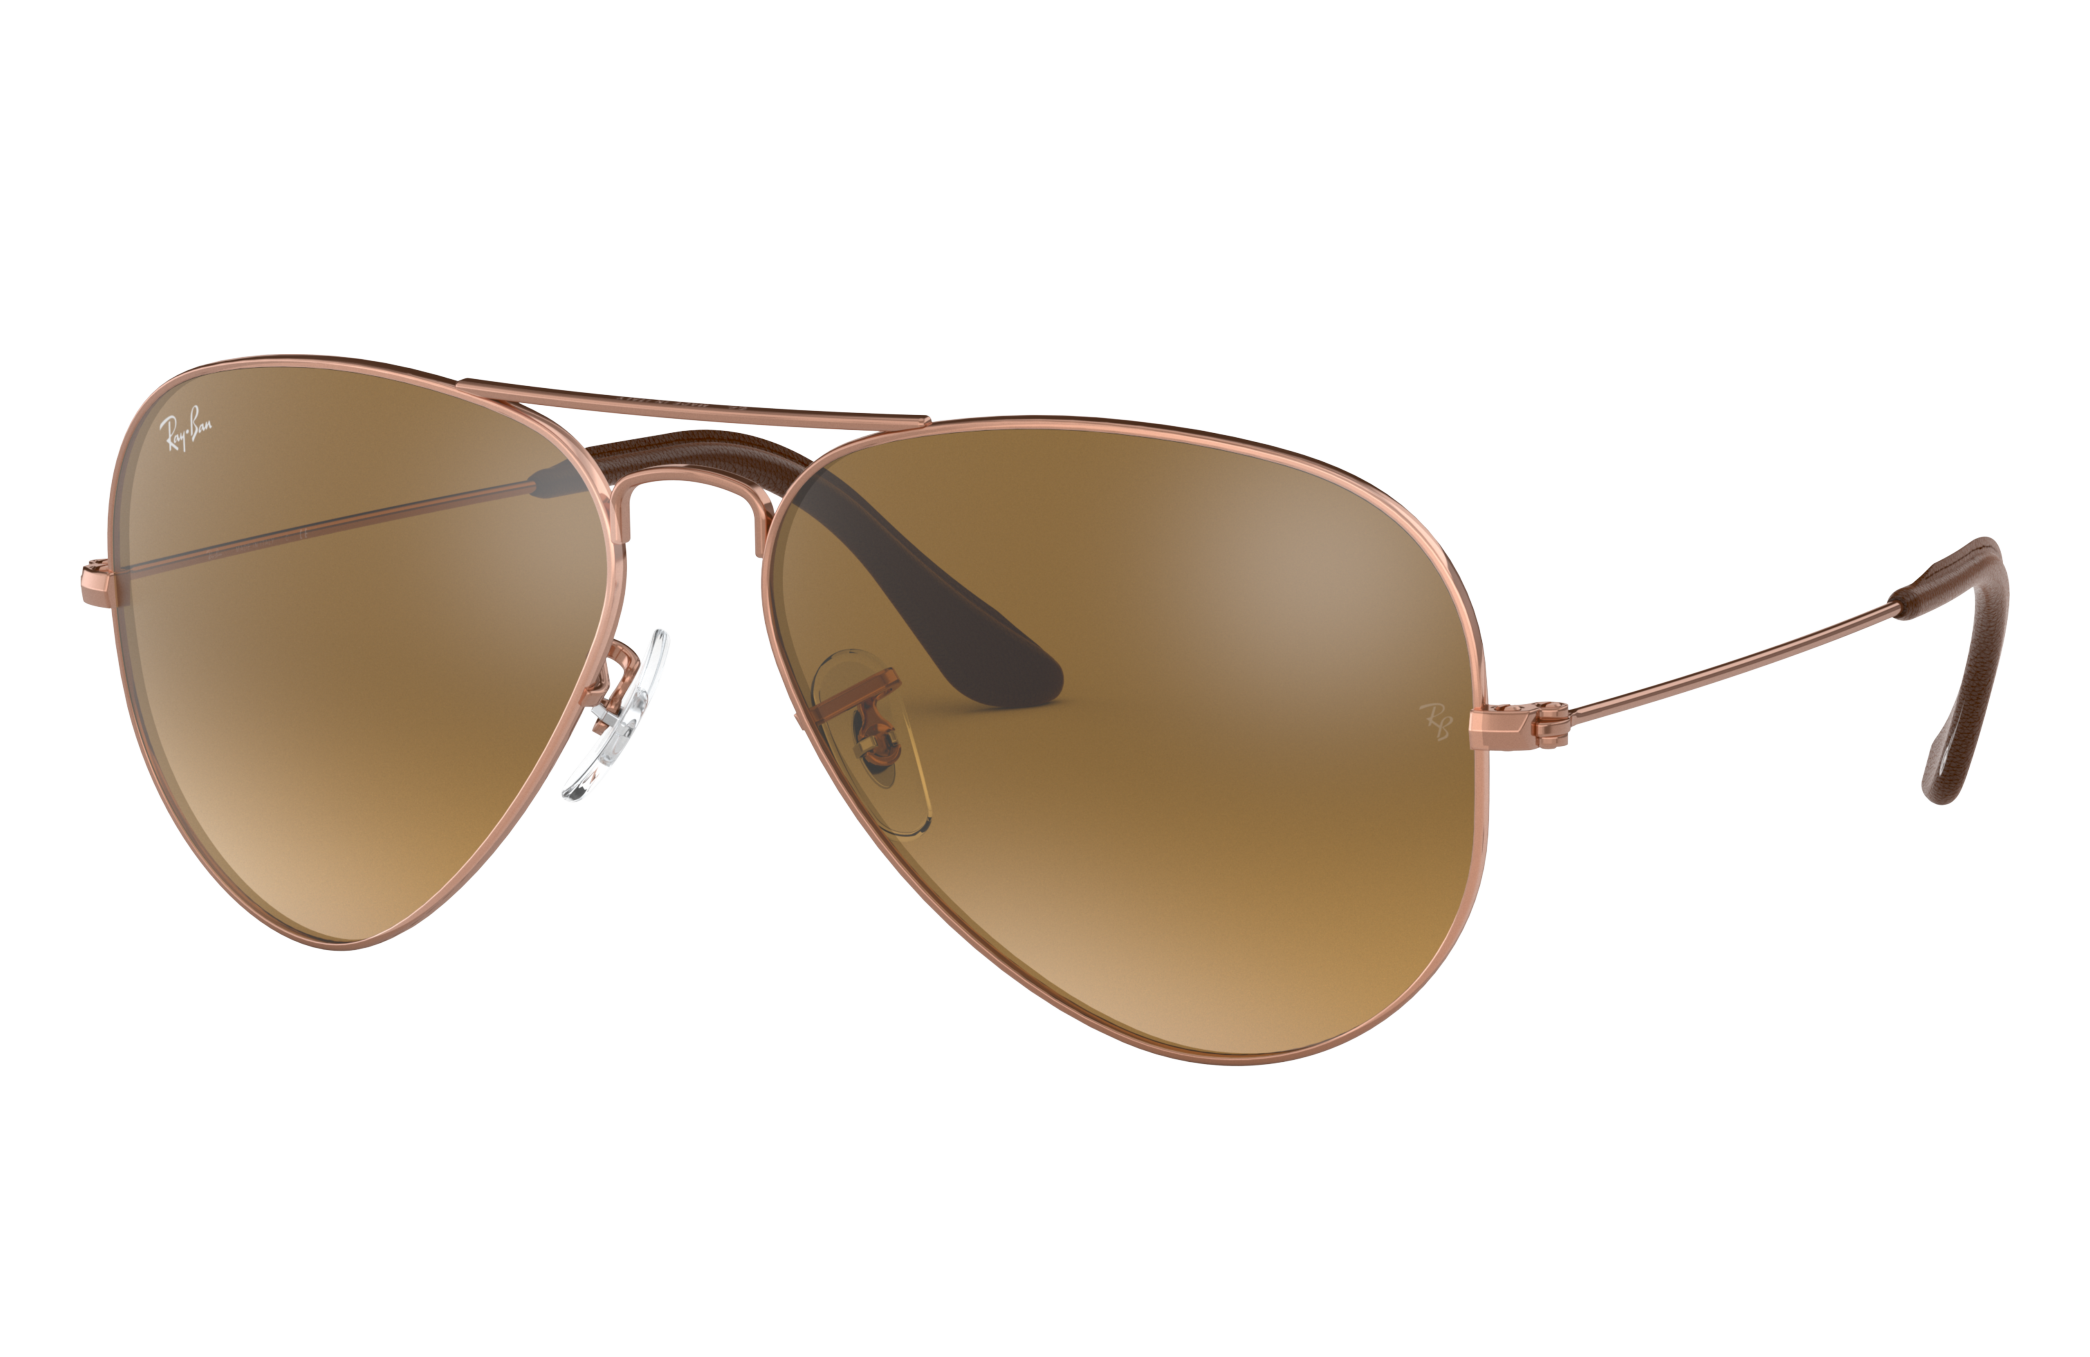 Ray-Ban Aviator @collection Bronze-Copper, Brown Lenses - RB3025